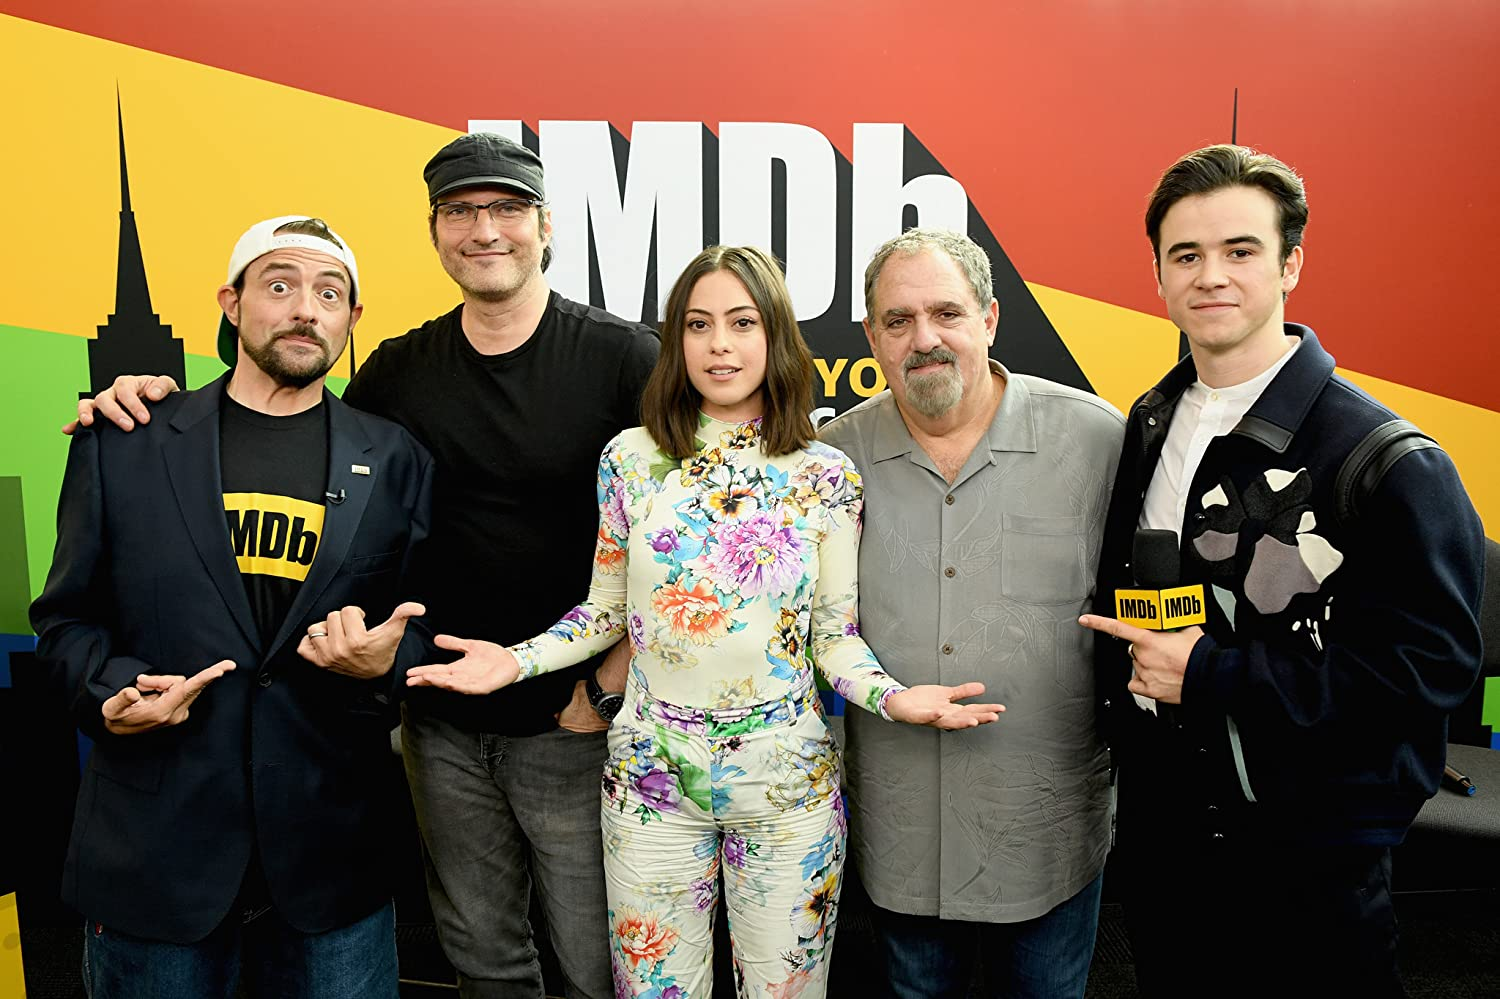 Robert Rodriguez, Kevin Smith, Jon Landau, Rosa Salazar, and Keean Johnson at an event for Alita: Battle Angel. Photo by Dimitrios Kambouris - © 2018 Getty Images - Image courtesy gettyimages.com